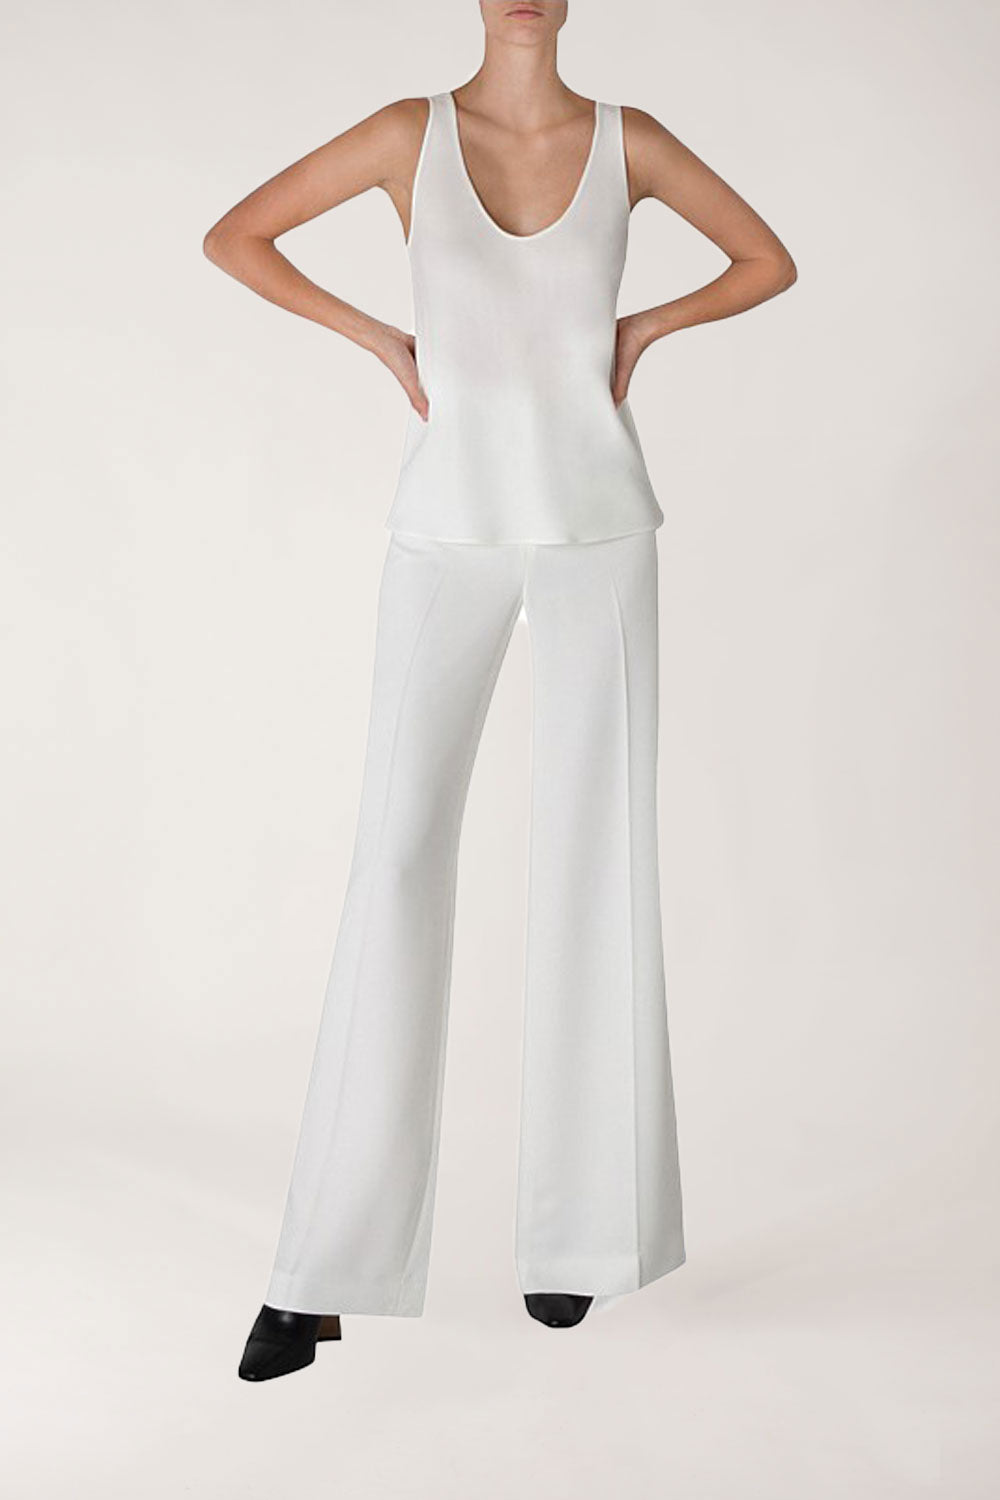 THE FASHION FLARE PANT